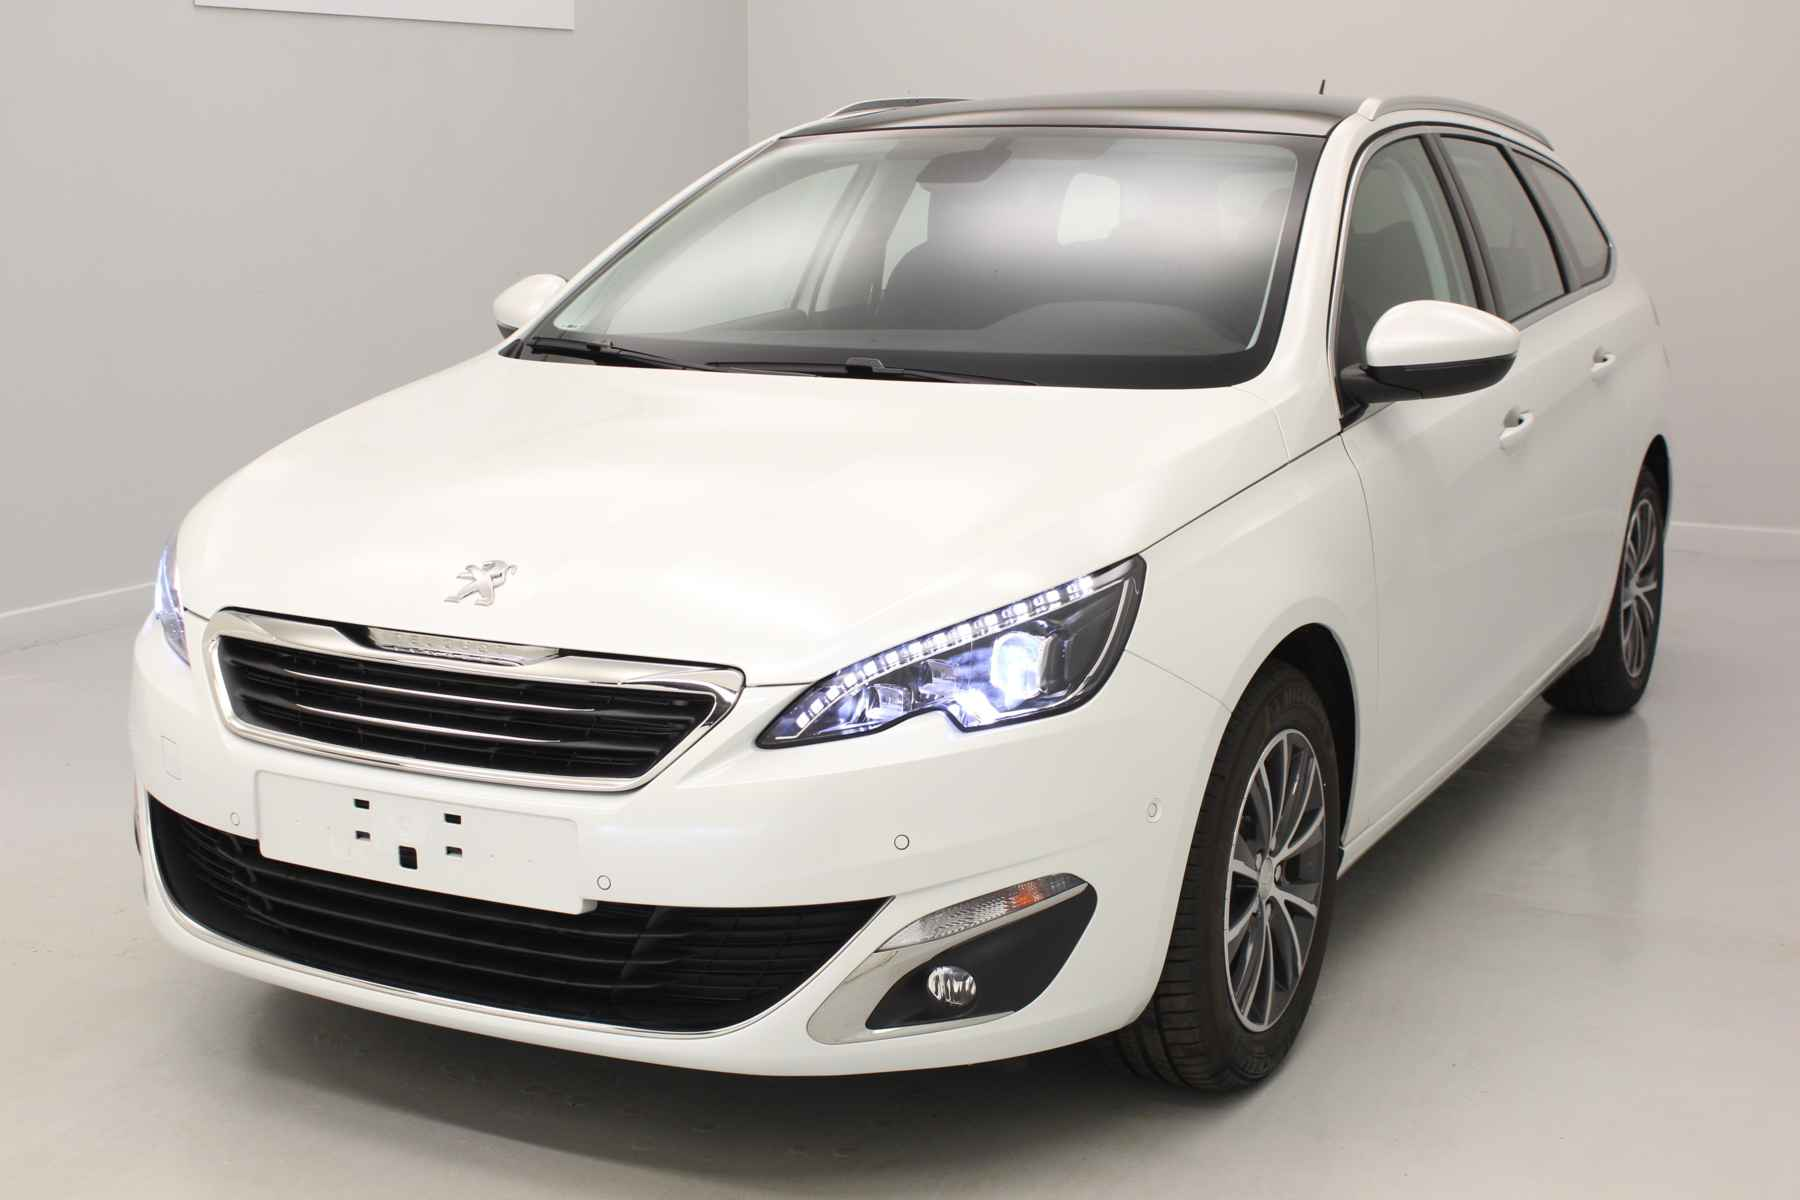 PEUGEOT 308 SW 1.6 BlueHDi 120ch S&S BVM6 Allure Blanc Nacré + Toit panoramique + Sièges avant chauffants avec options